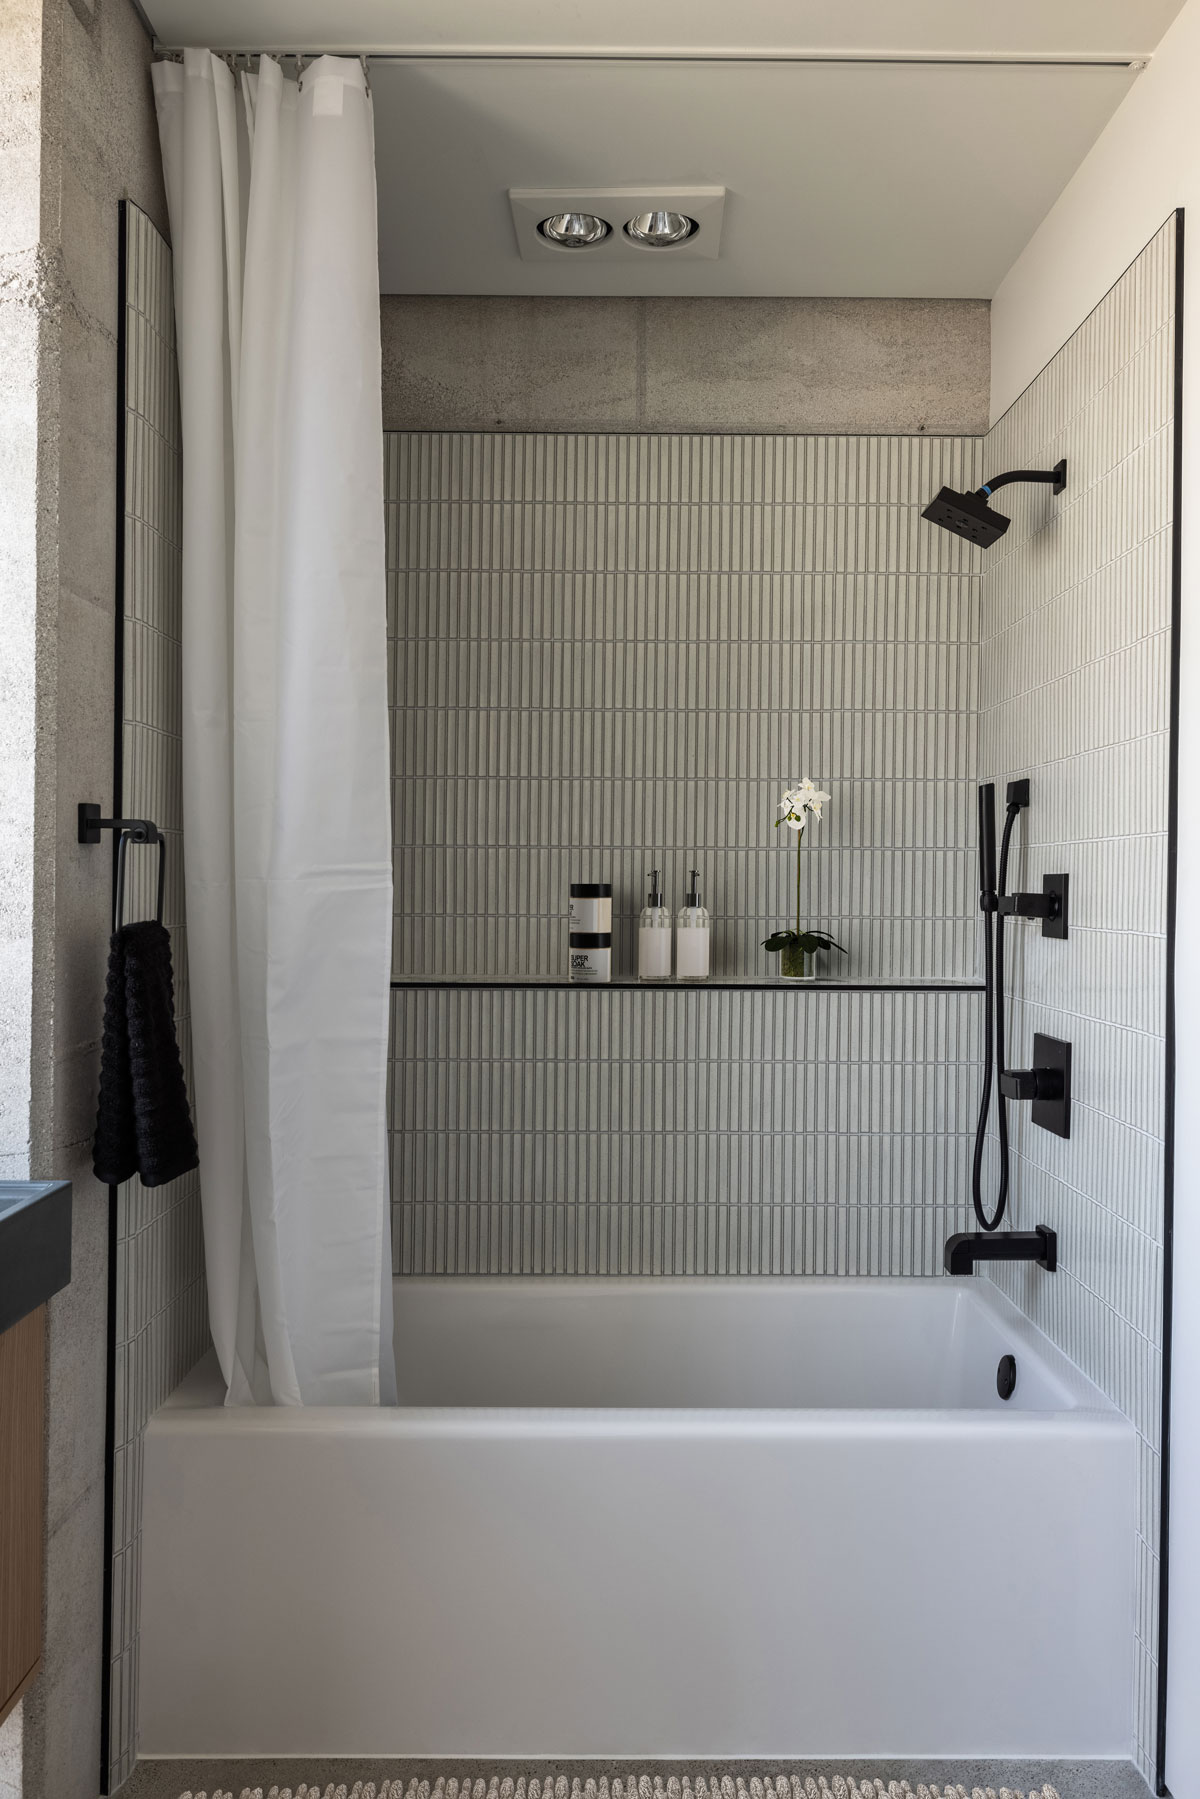 Japanese ceramic tile frame this simple tub in a rammed earth bathroom